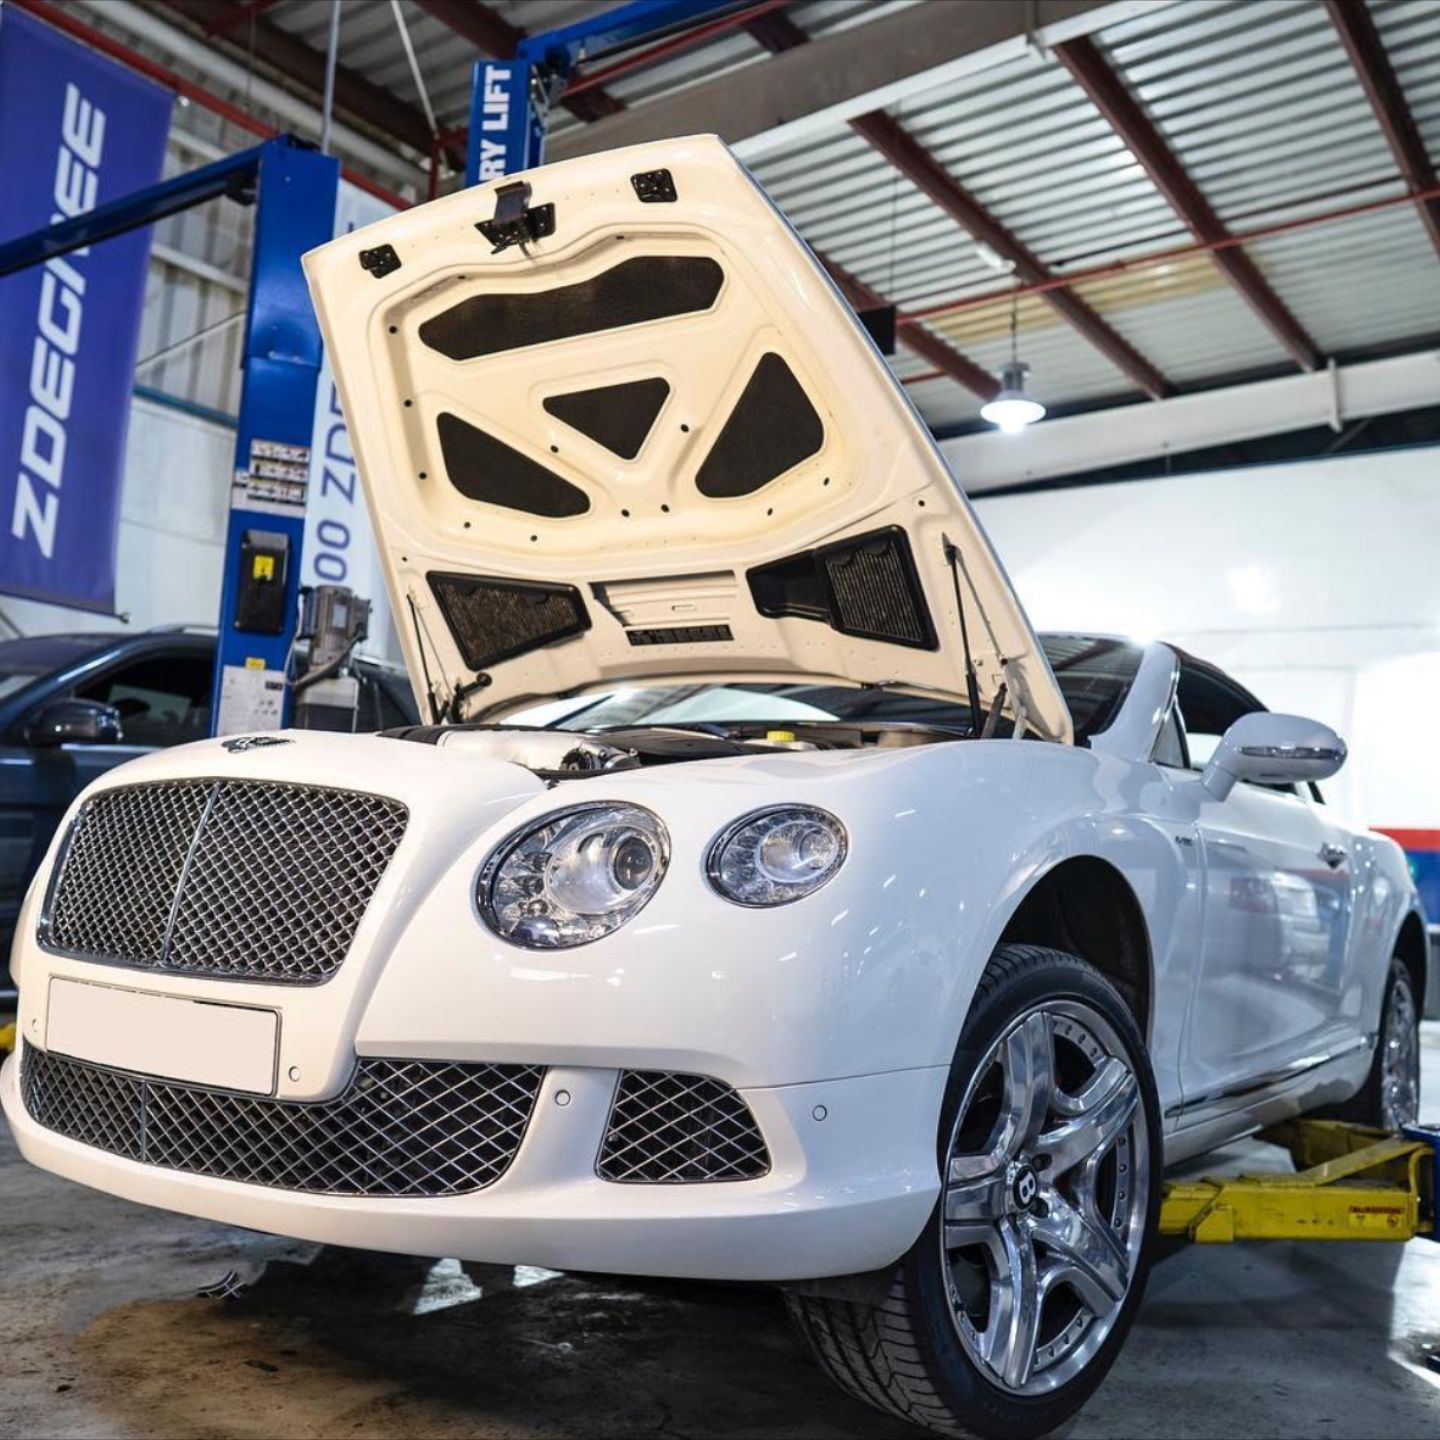 Bentley Continental In For An Oil Change Tyre Shop Buy Tires Bentley Continental